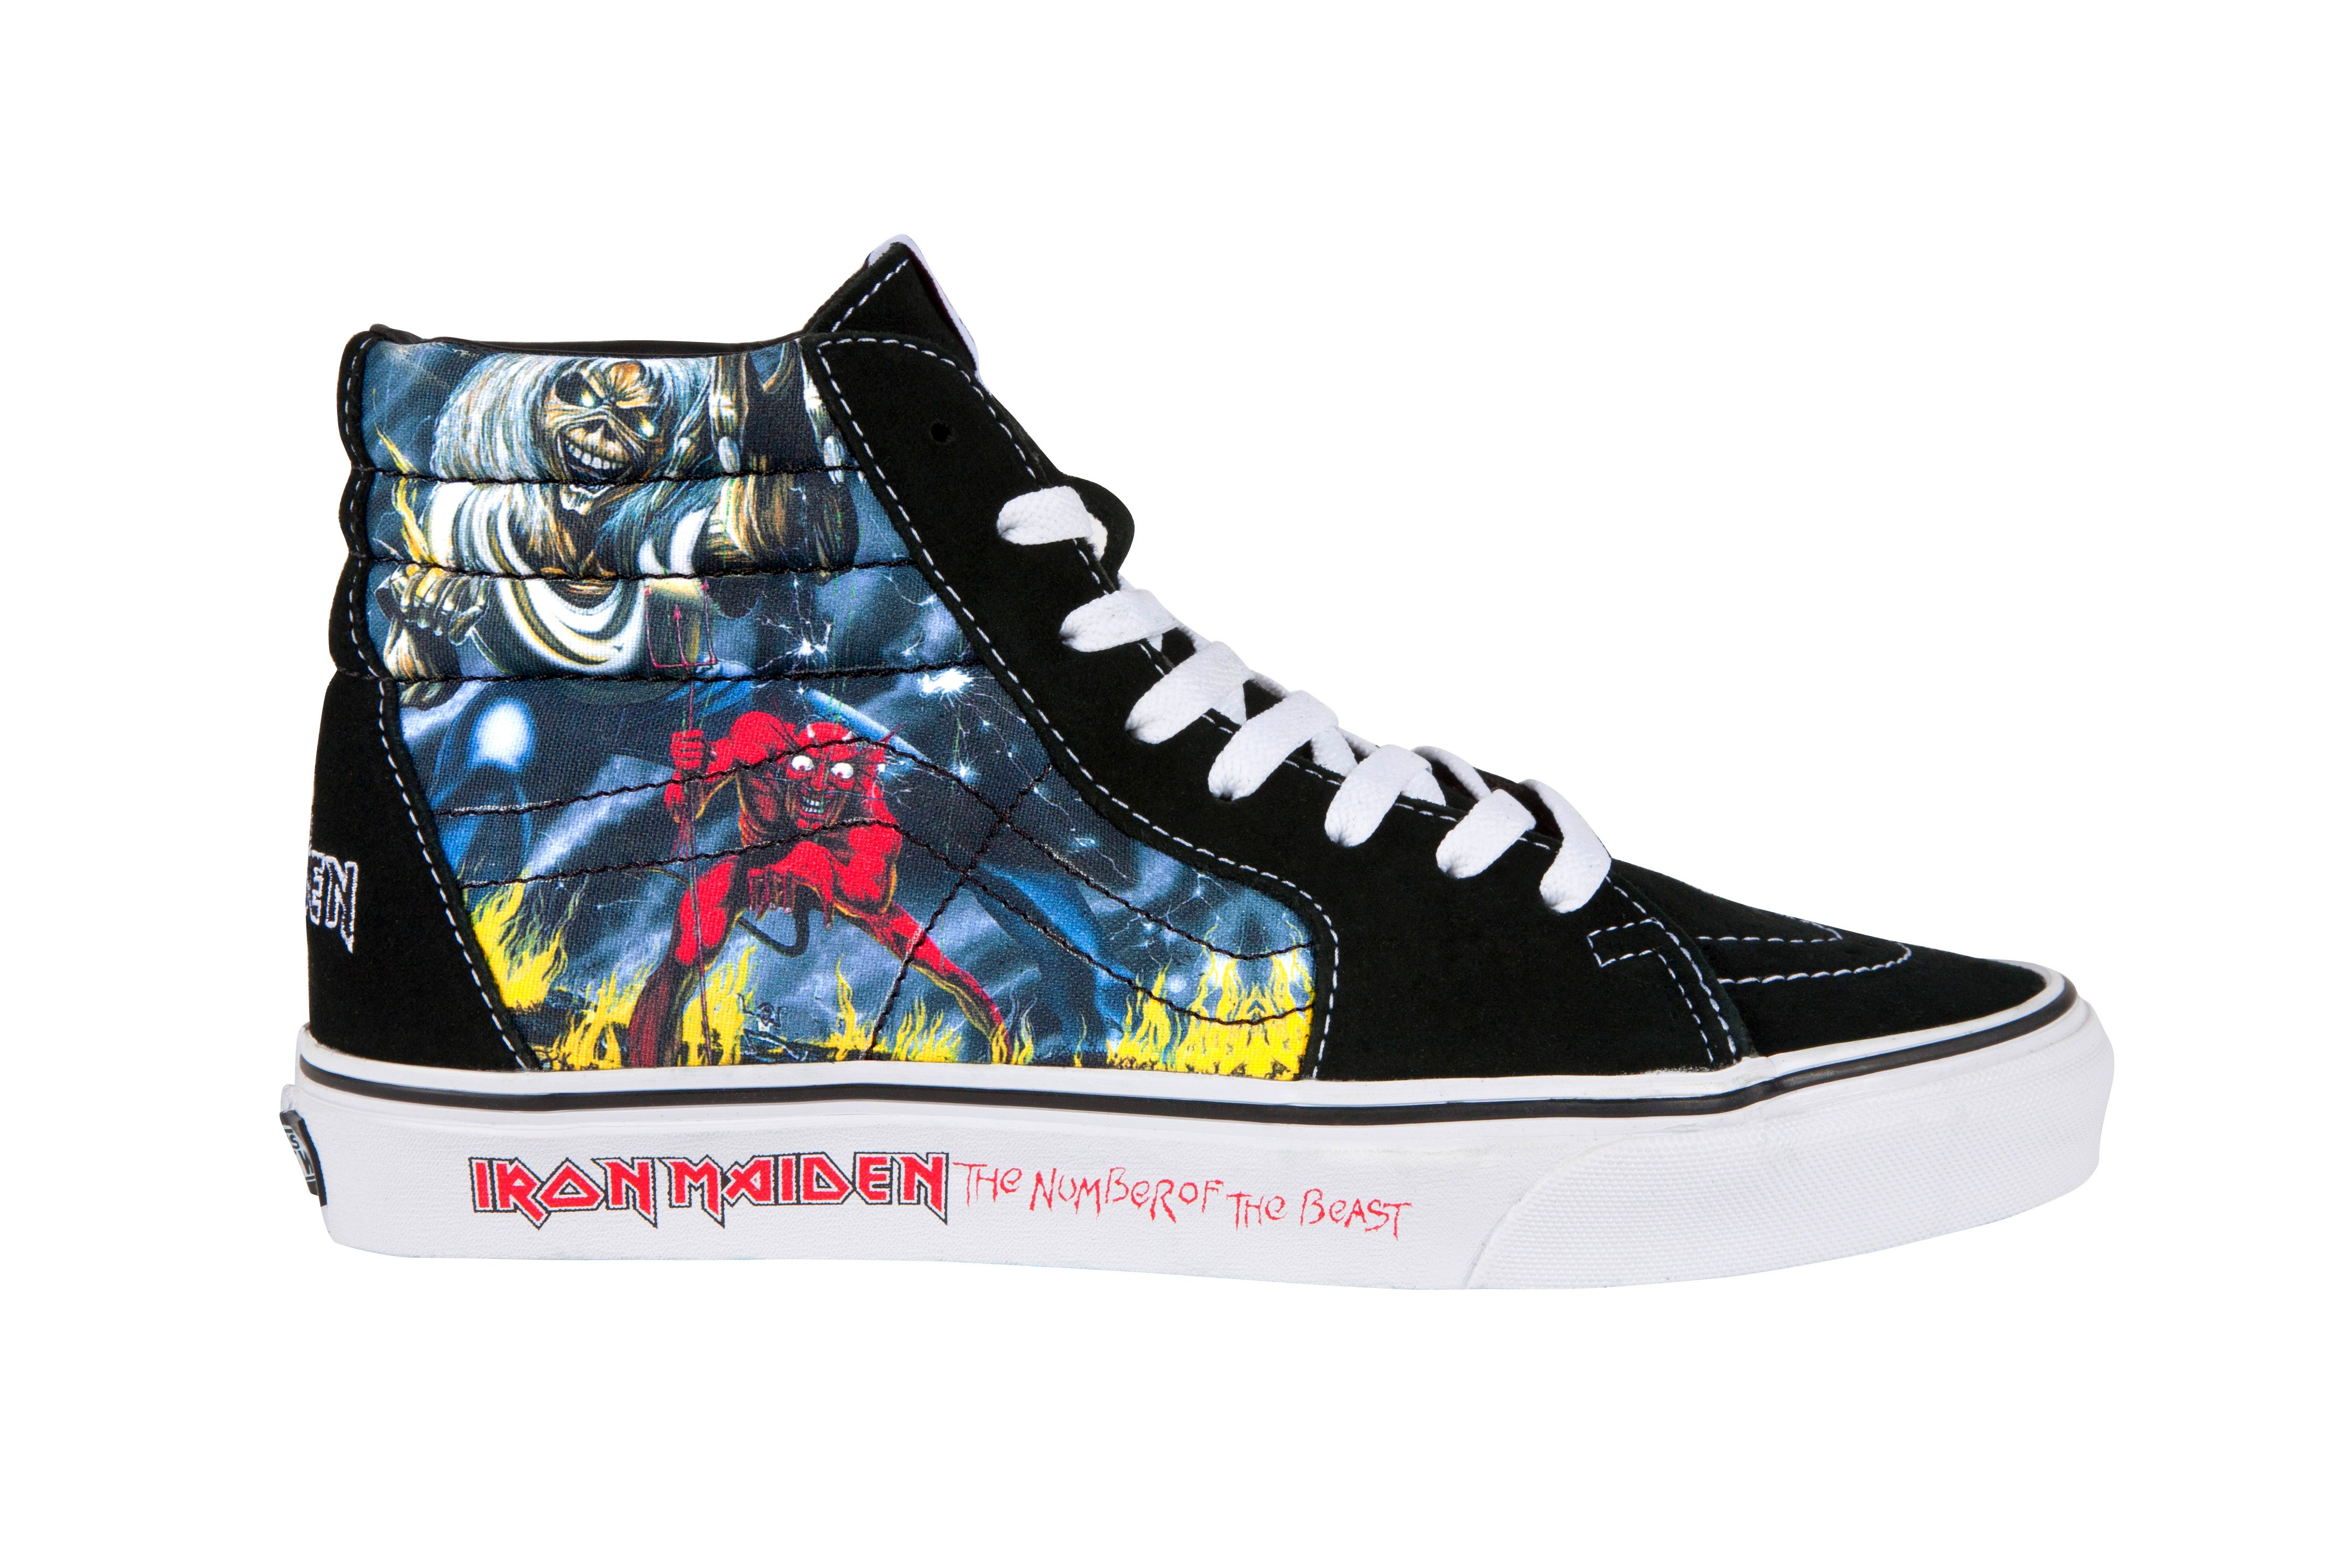 Iron Maiden x Vans 'The Number of the Beast' Collection